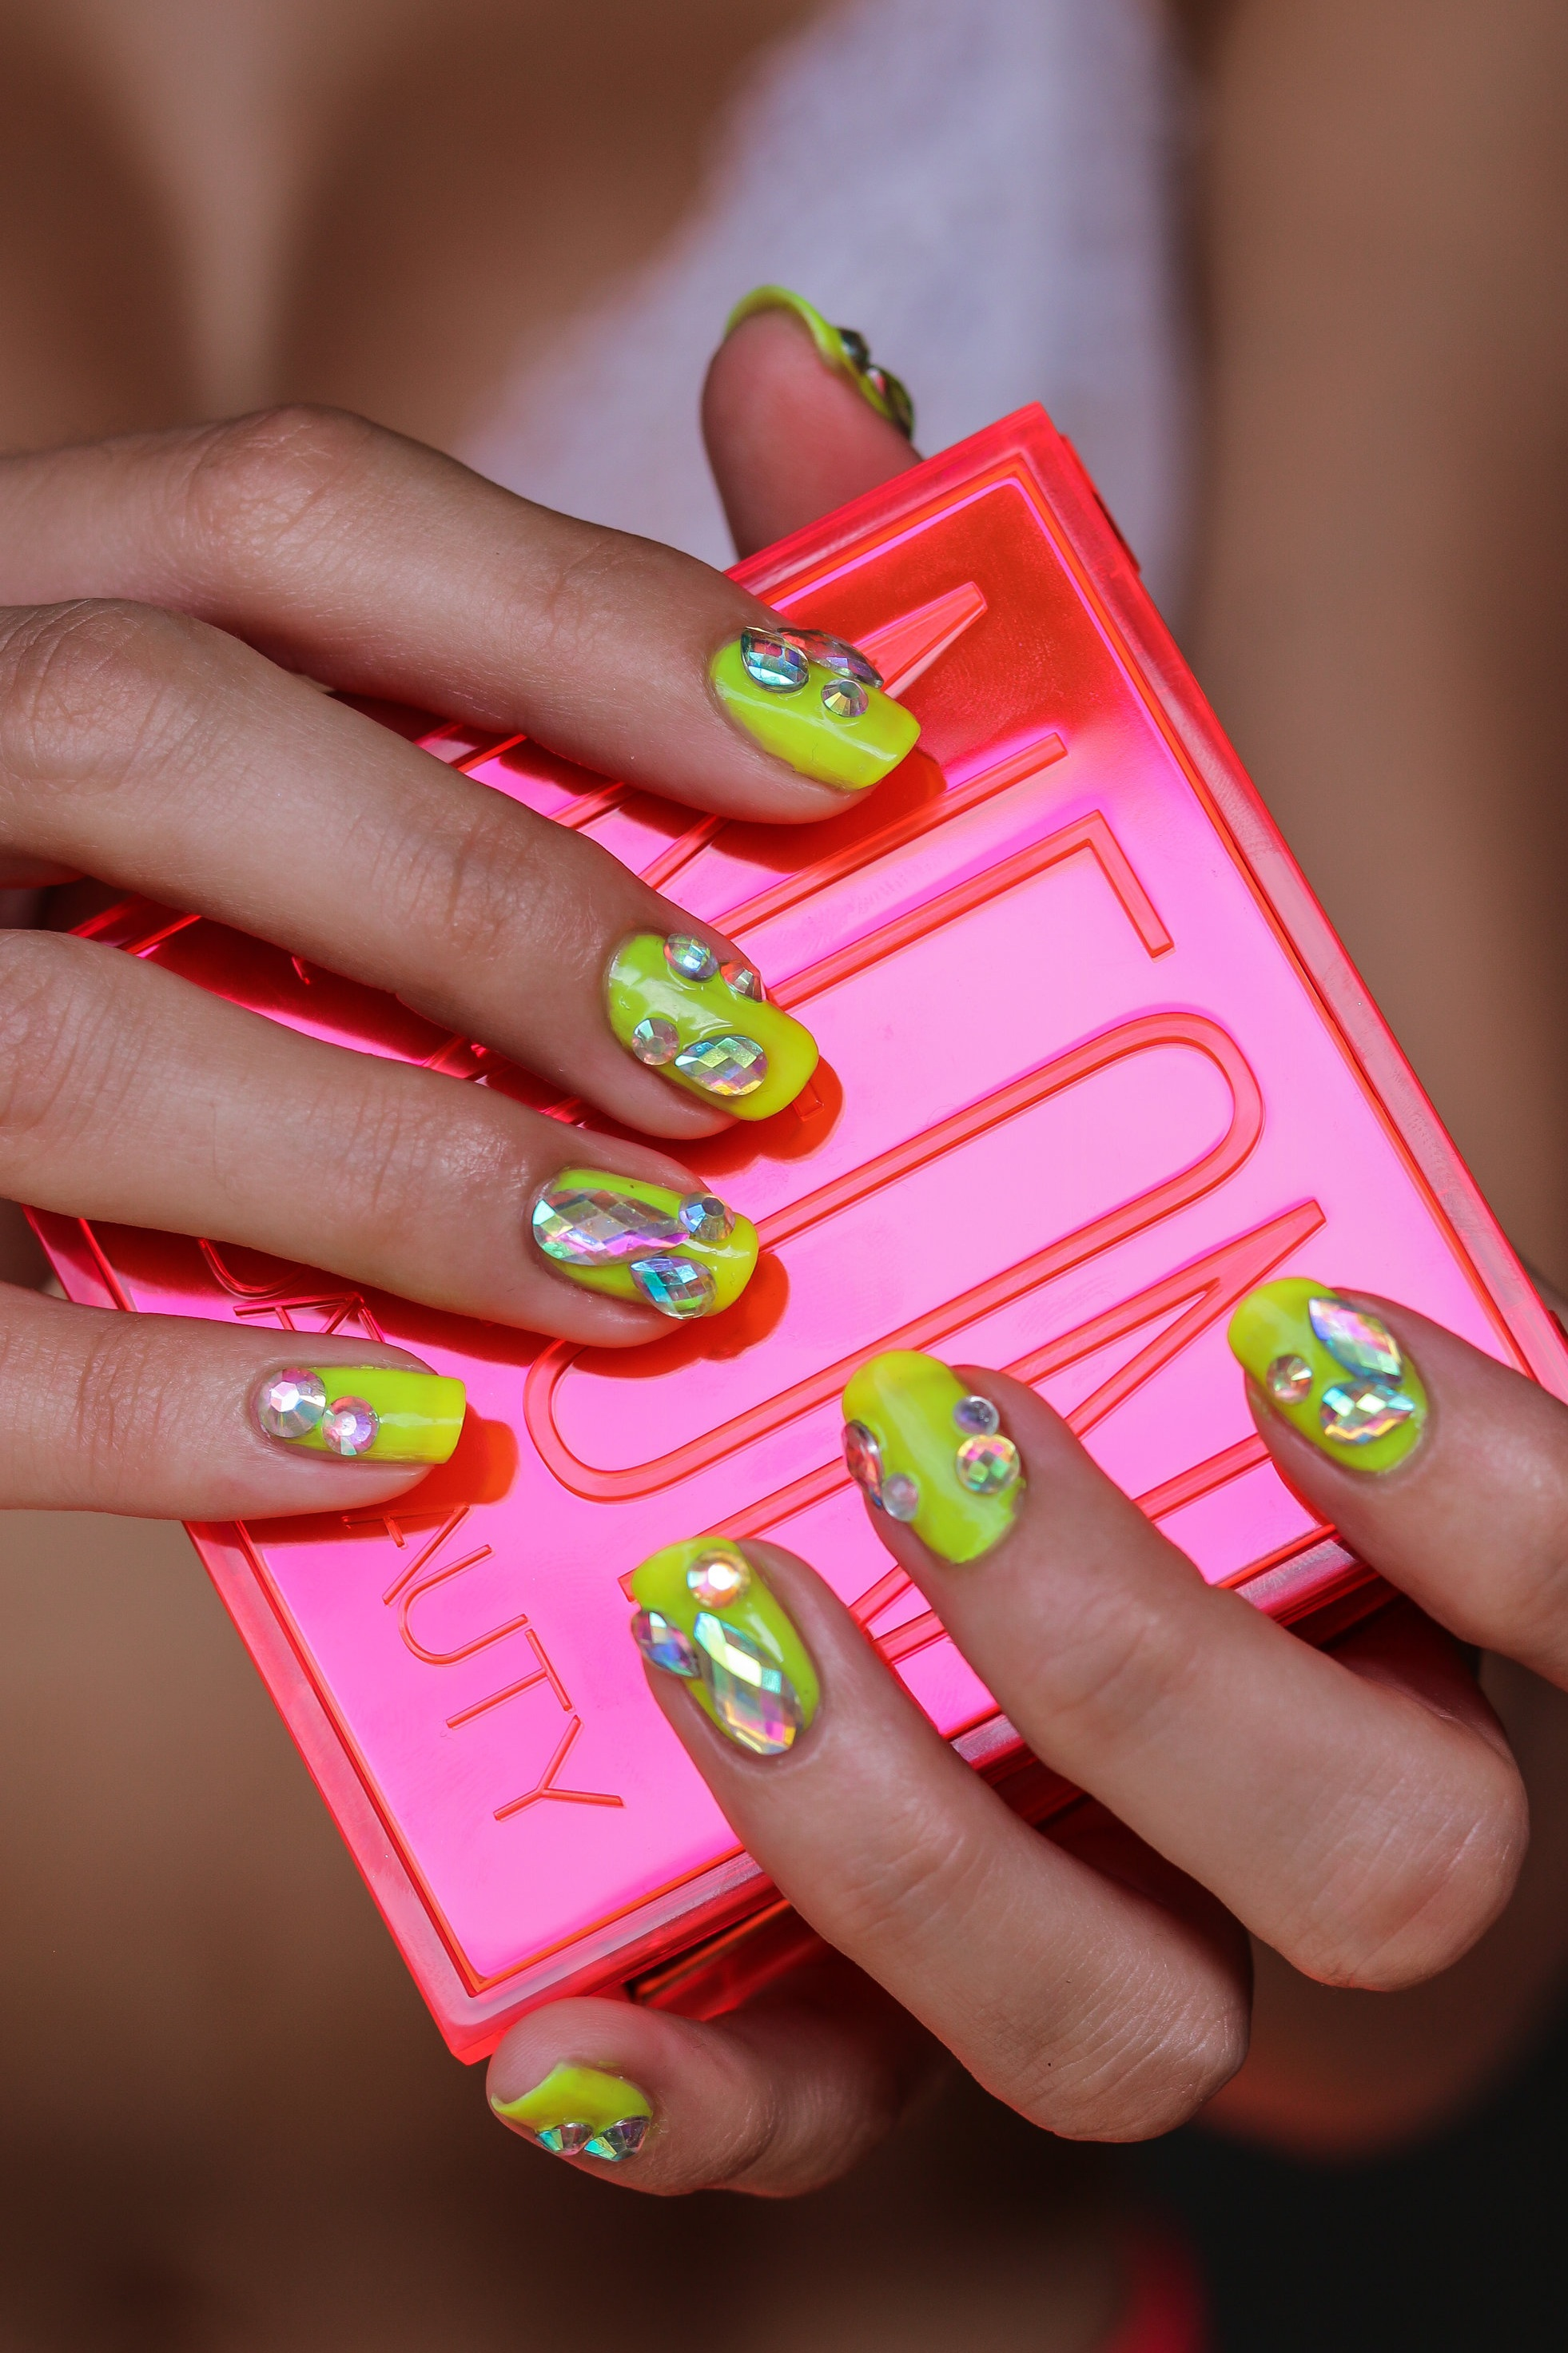 The+Hungarian+Brunette+Summer+Blinged+out+Neon+Yellow+nails+with+festival+crystal+accents+%283+of+9%29.jpg